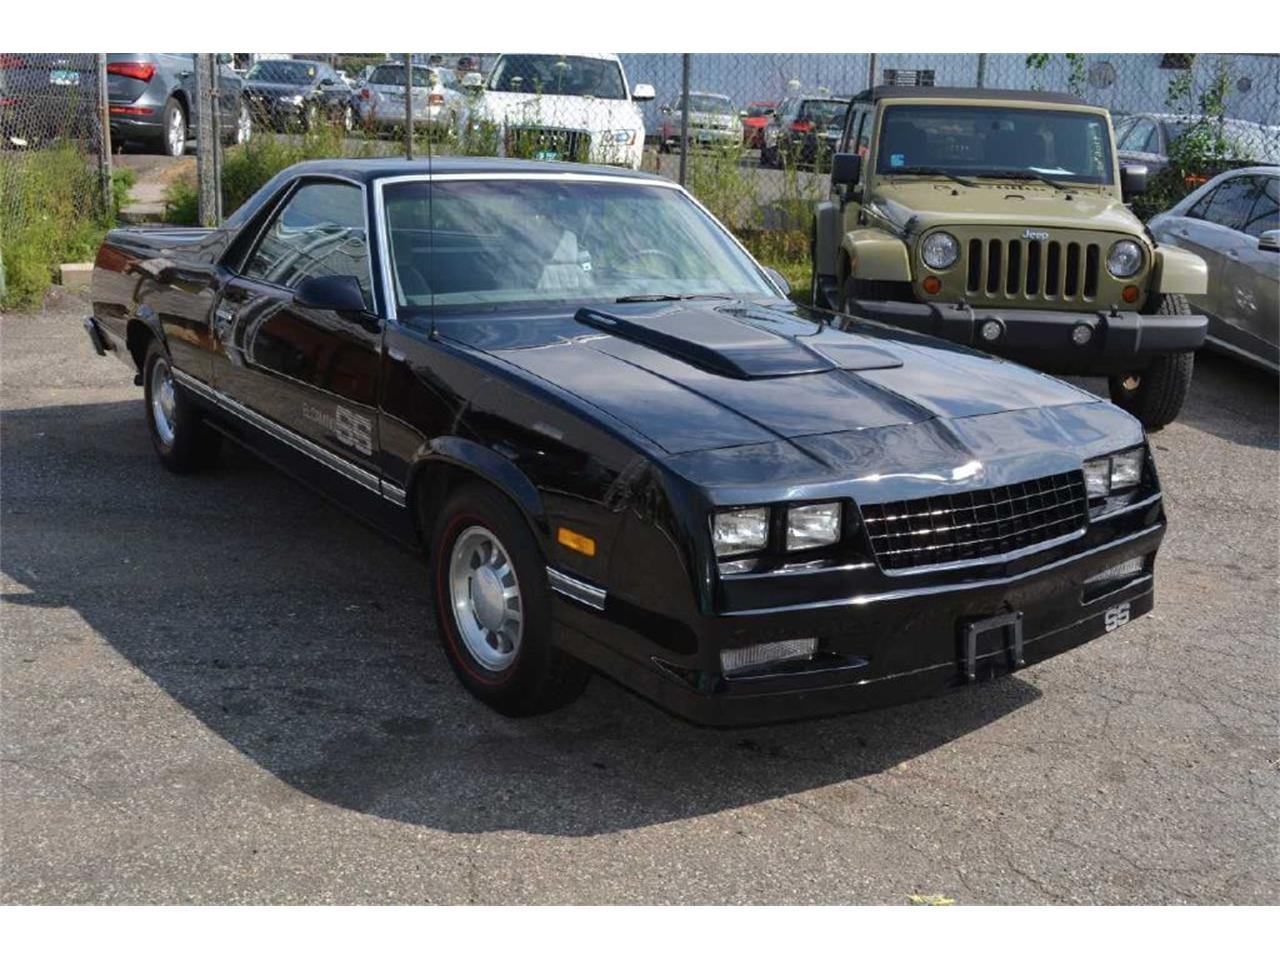 1987 Chevrolet El Camino (CC-1250107) for sale in West Pittston, Pennsylvania